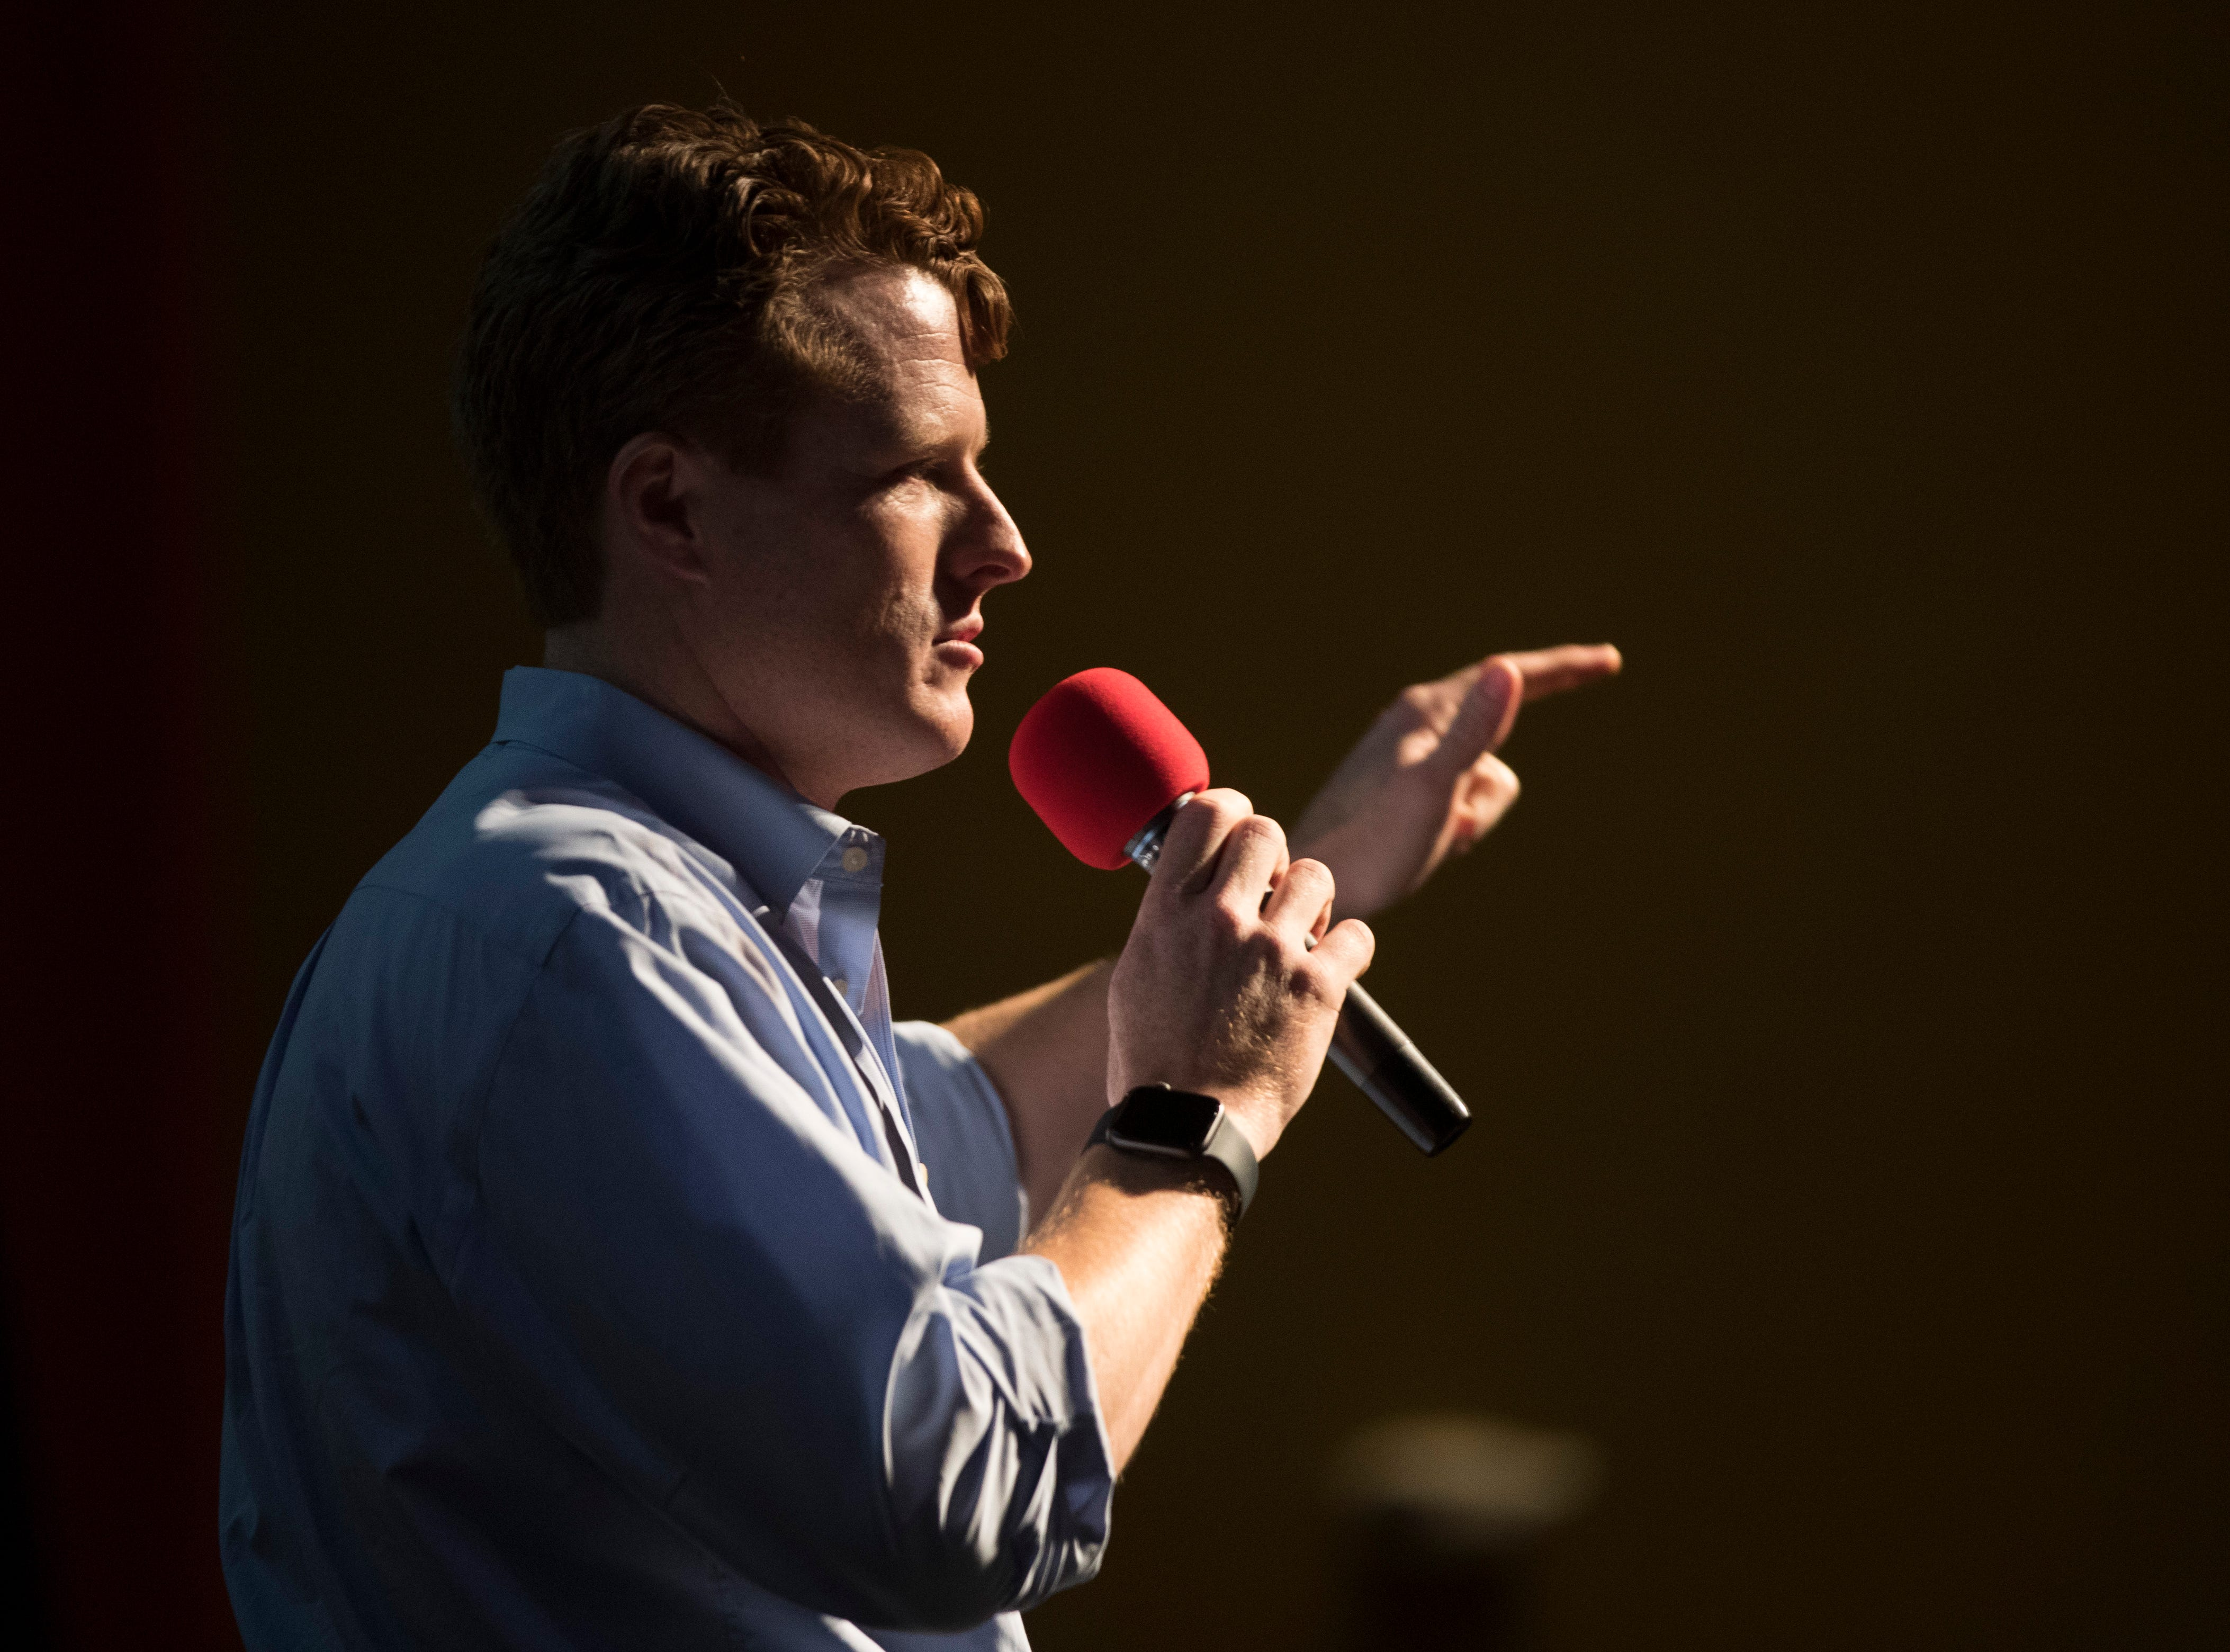 U.S. Rep. Joe Kennedy III speaks during a Beto O'Rourke campaign event on Saturday, Oct. 13, 2018 at Del Mar College in Corpus Christi.